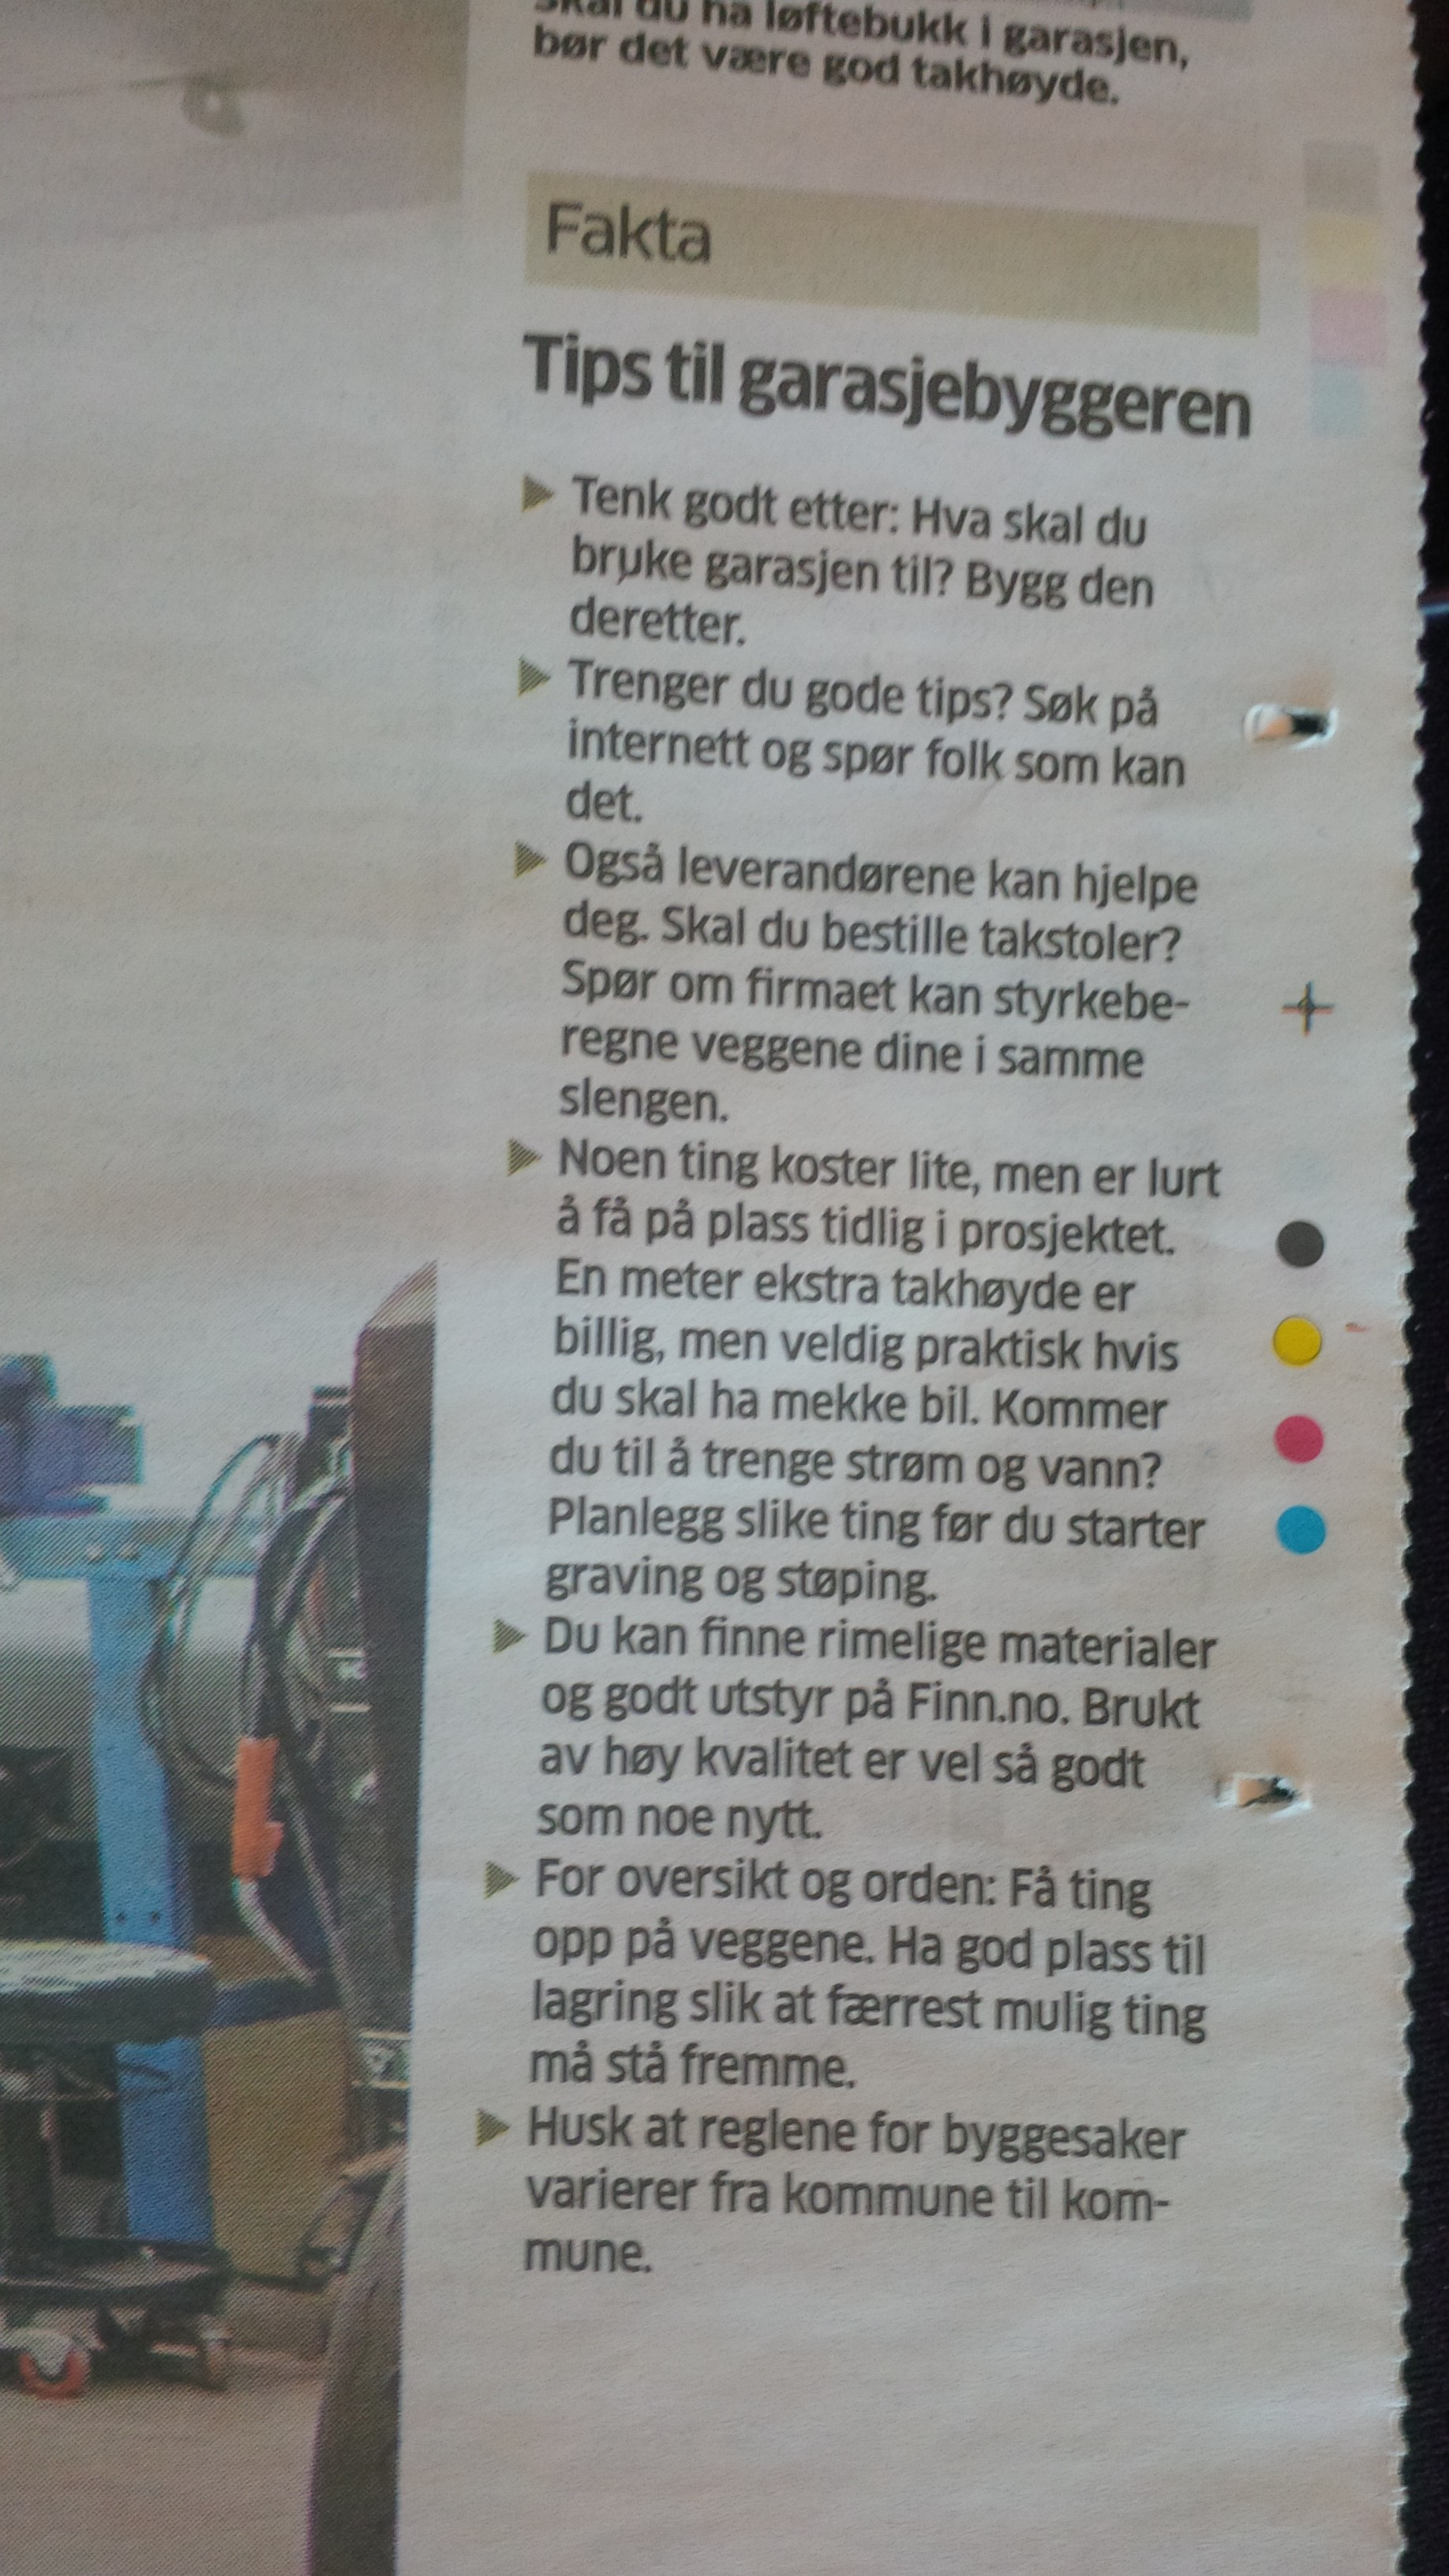 Copyright Aftenposten All rights reserved